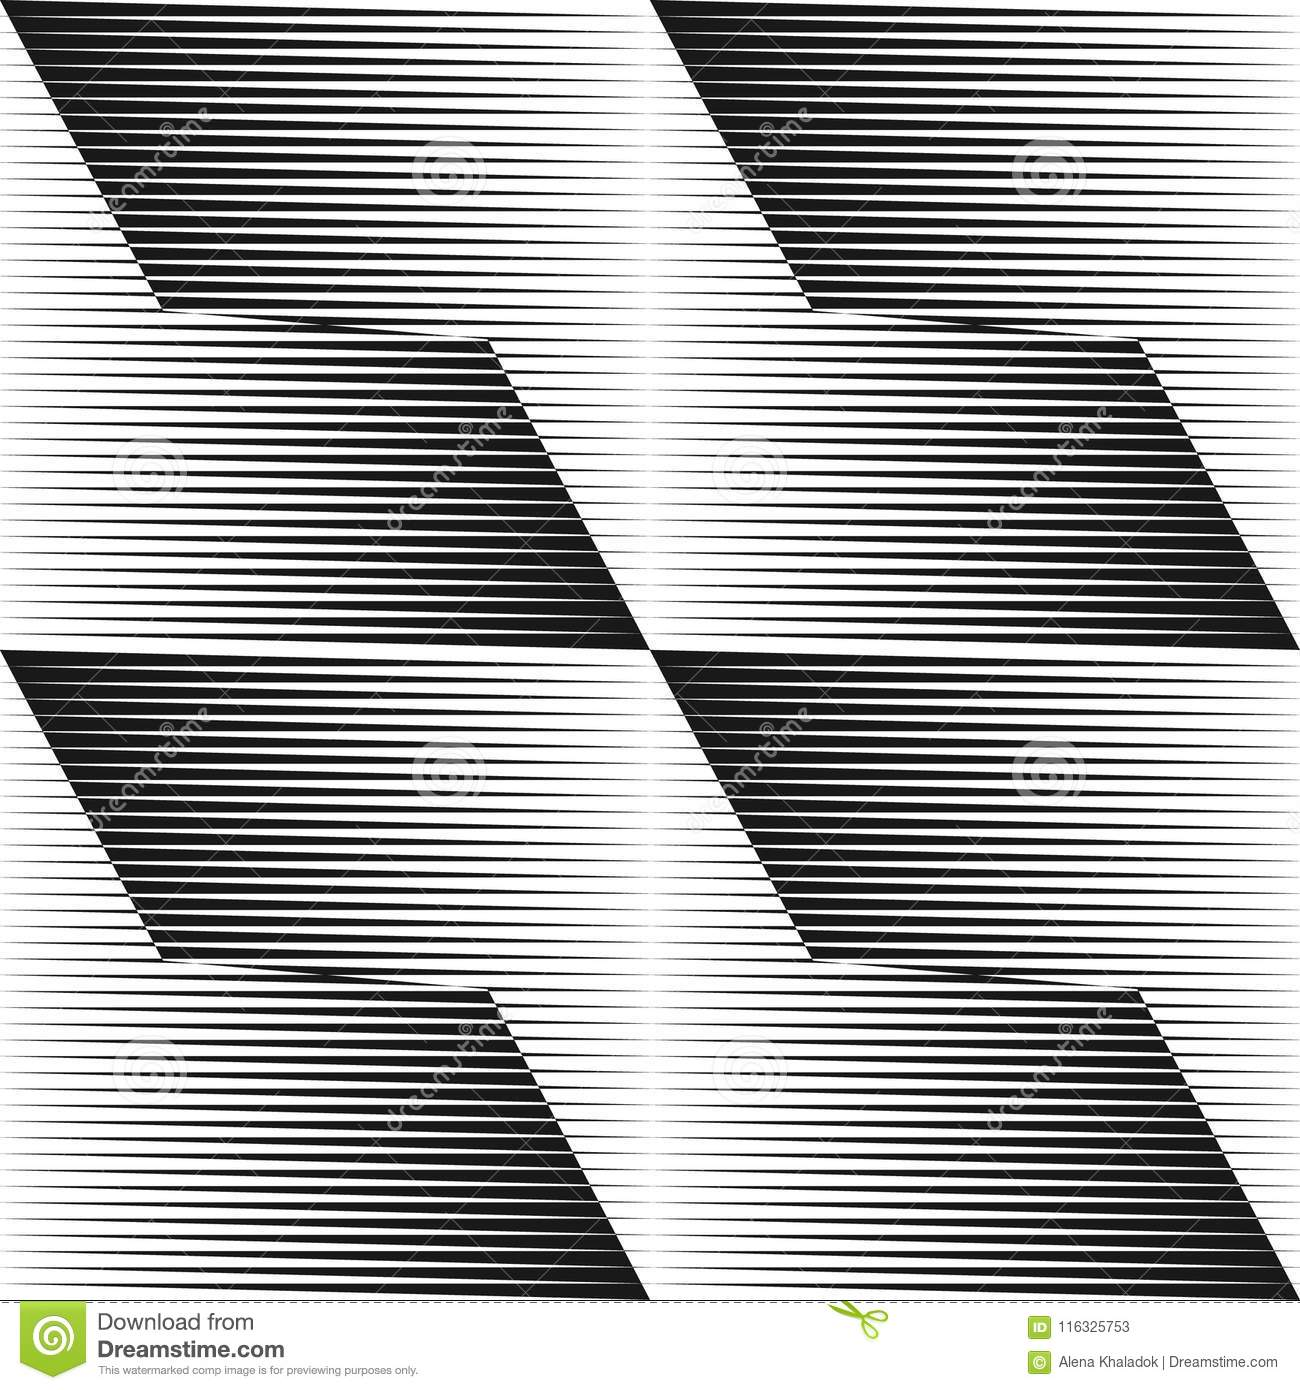 Abstract halftone lines background.